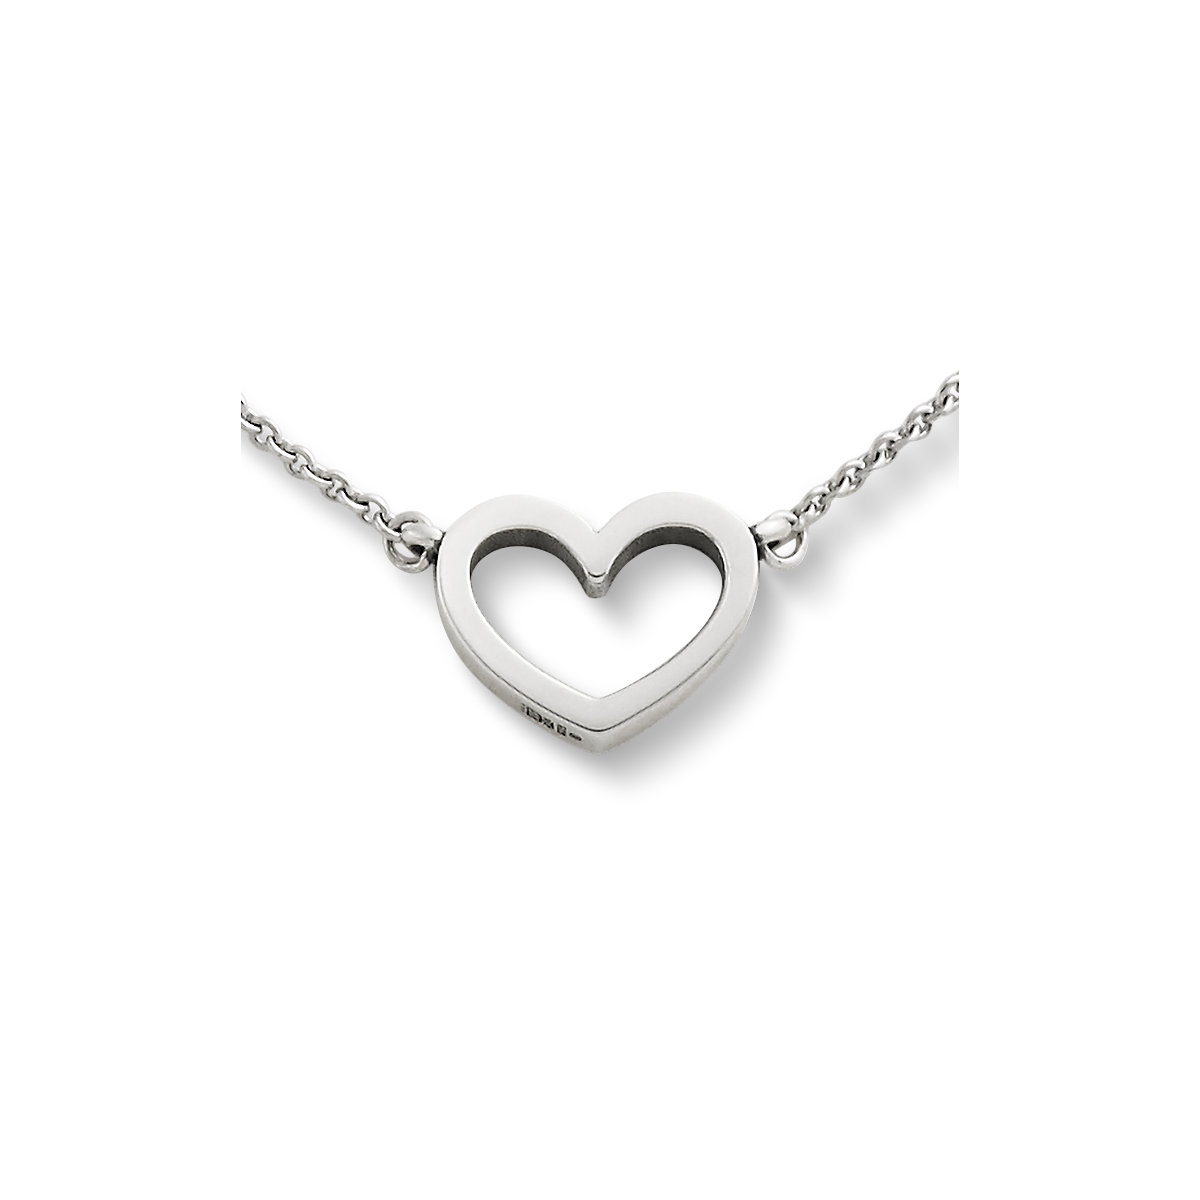 Silver necklaces pendant necklaces james avery petite heart necklace aloadofball Choice Image